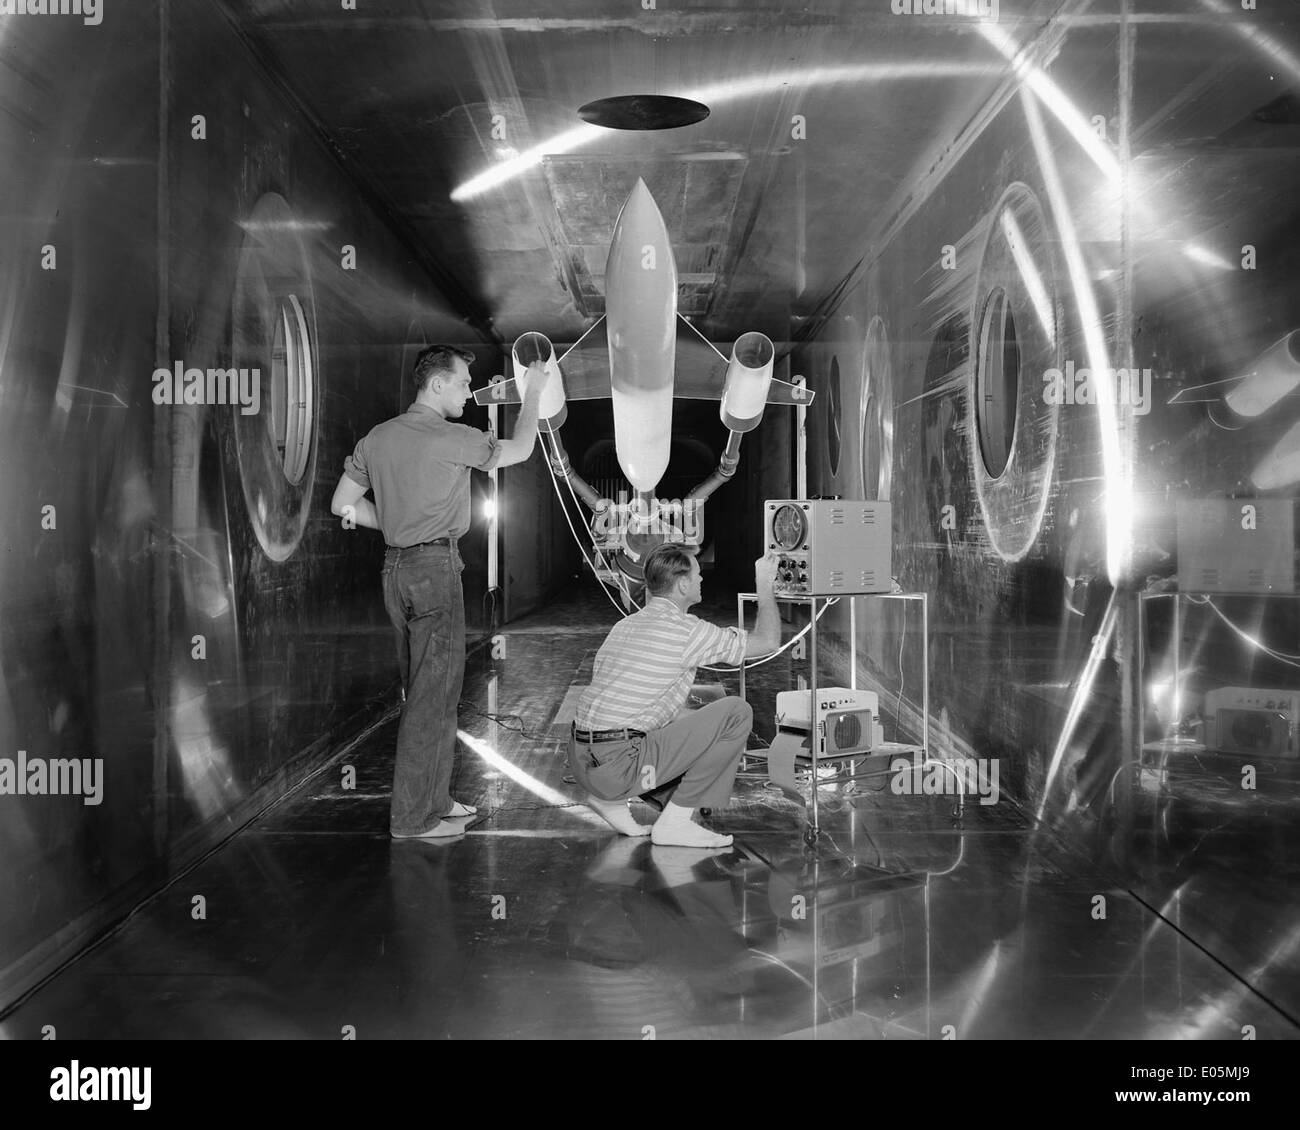 Engineers Check Body Revolution Model - Stock Image